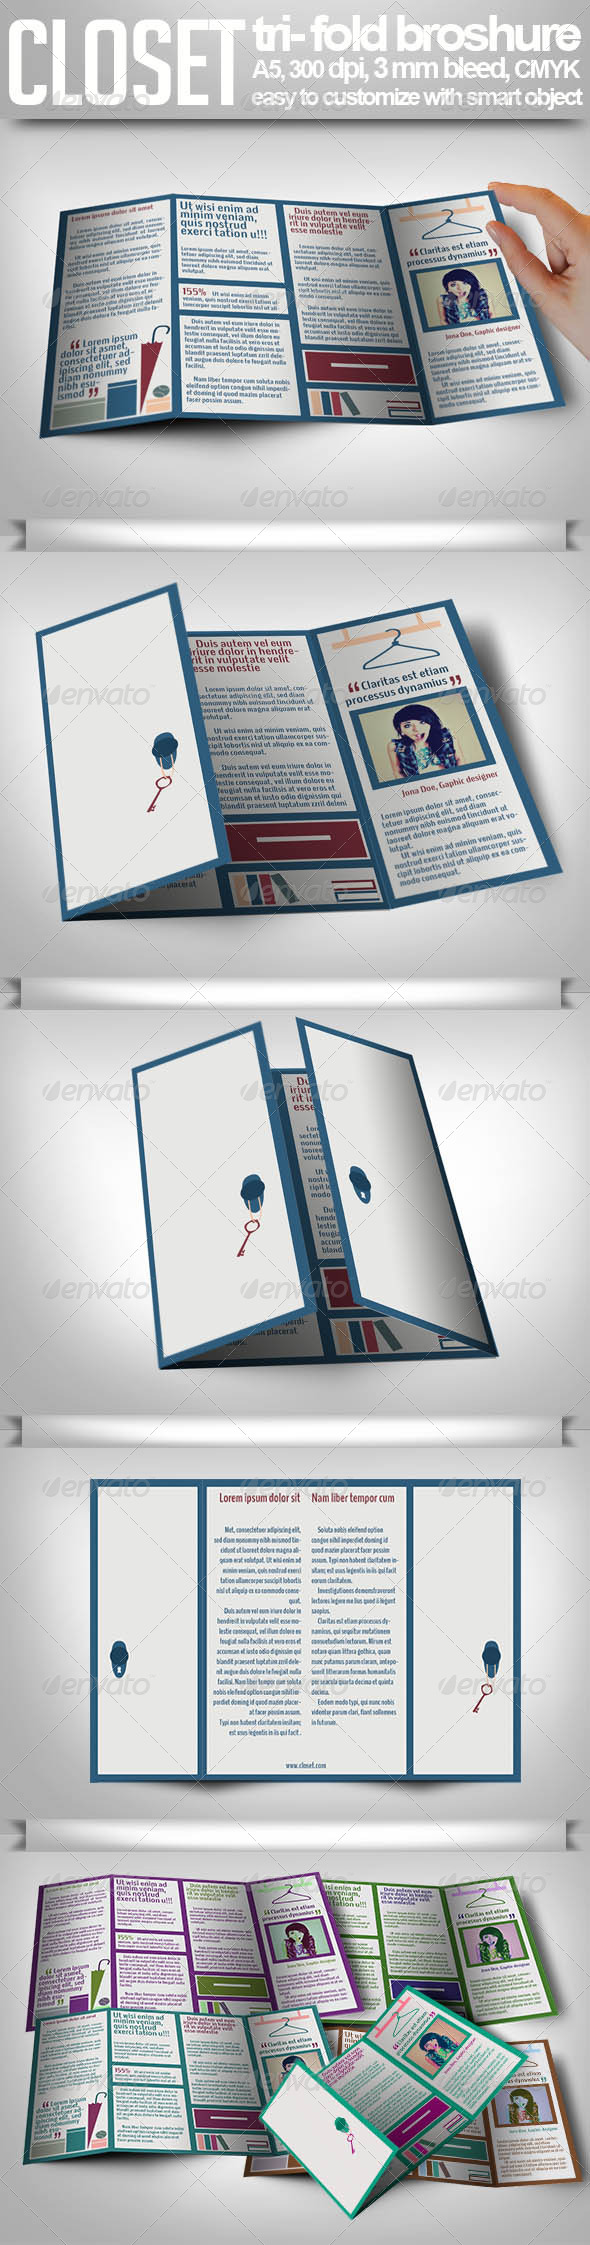 GraphicRiver Tri-fold Closet Brochure 4814448